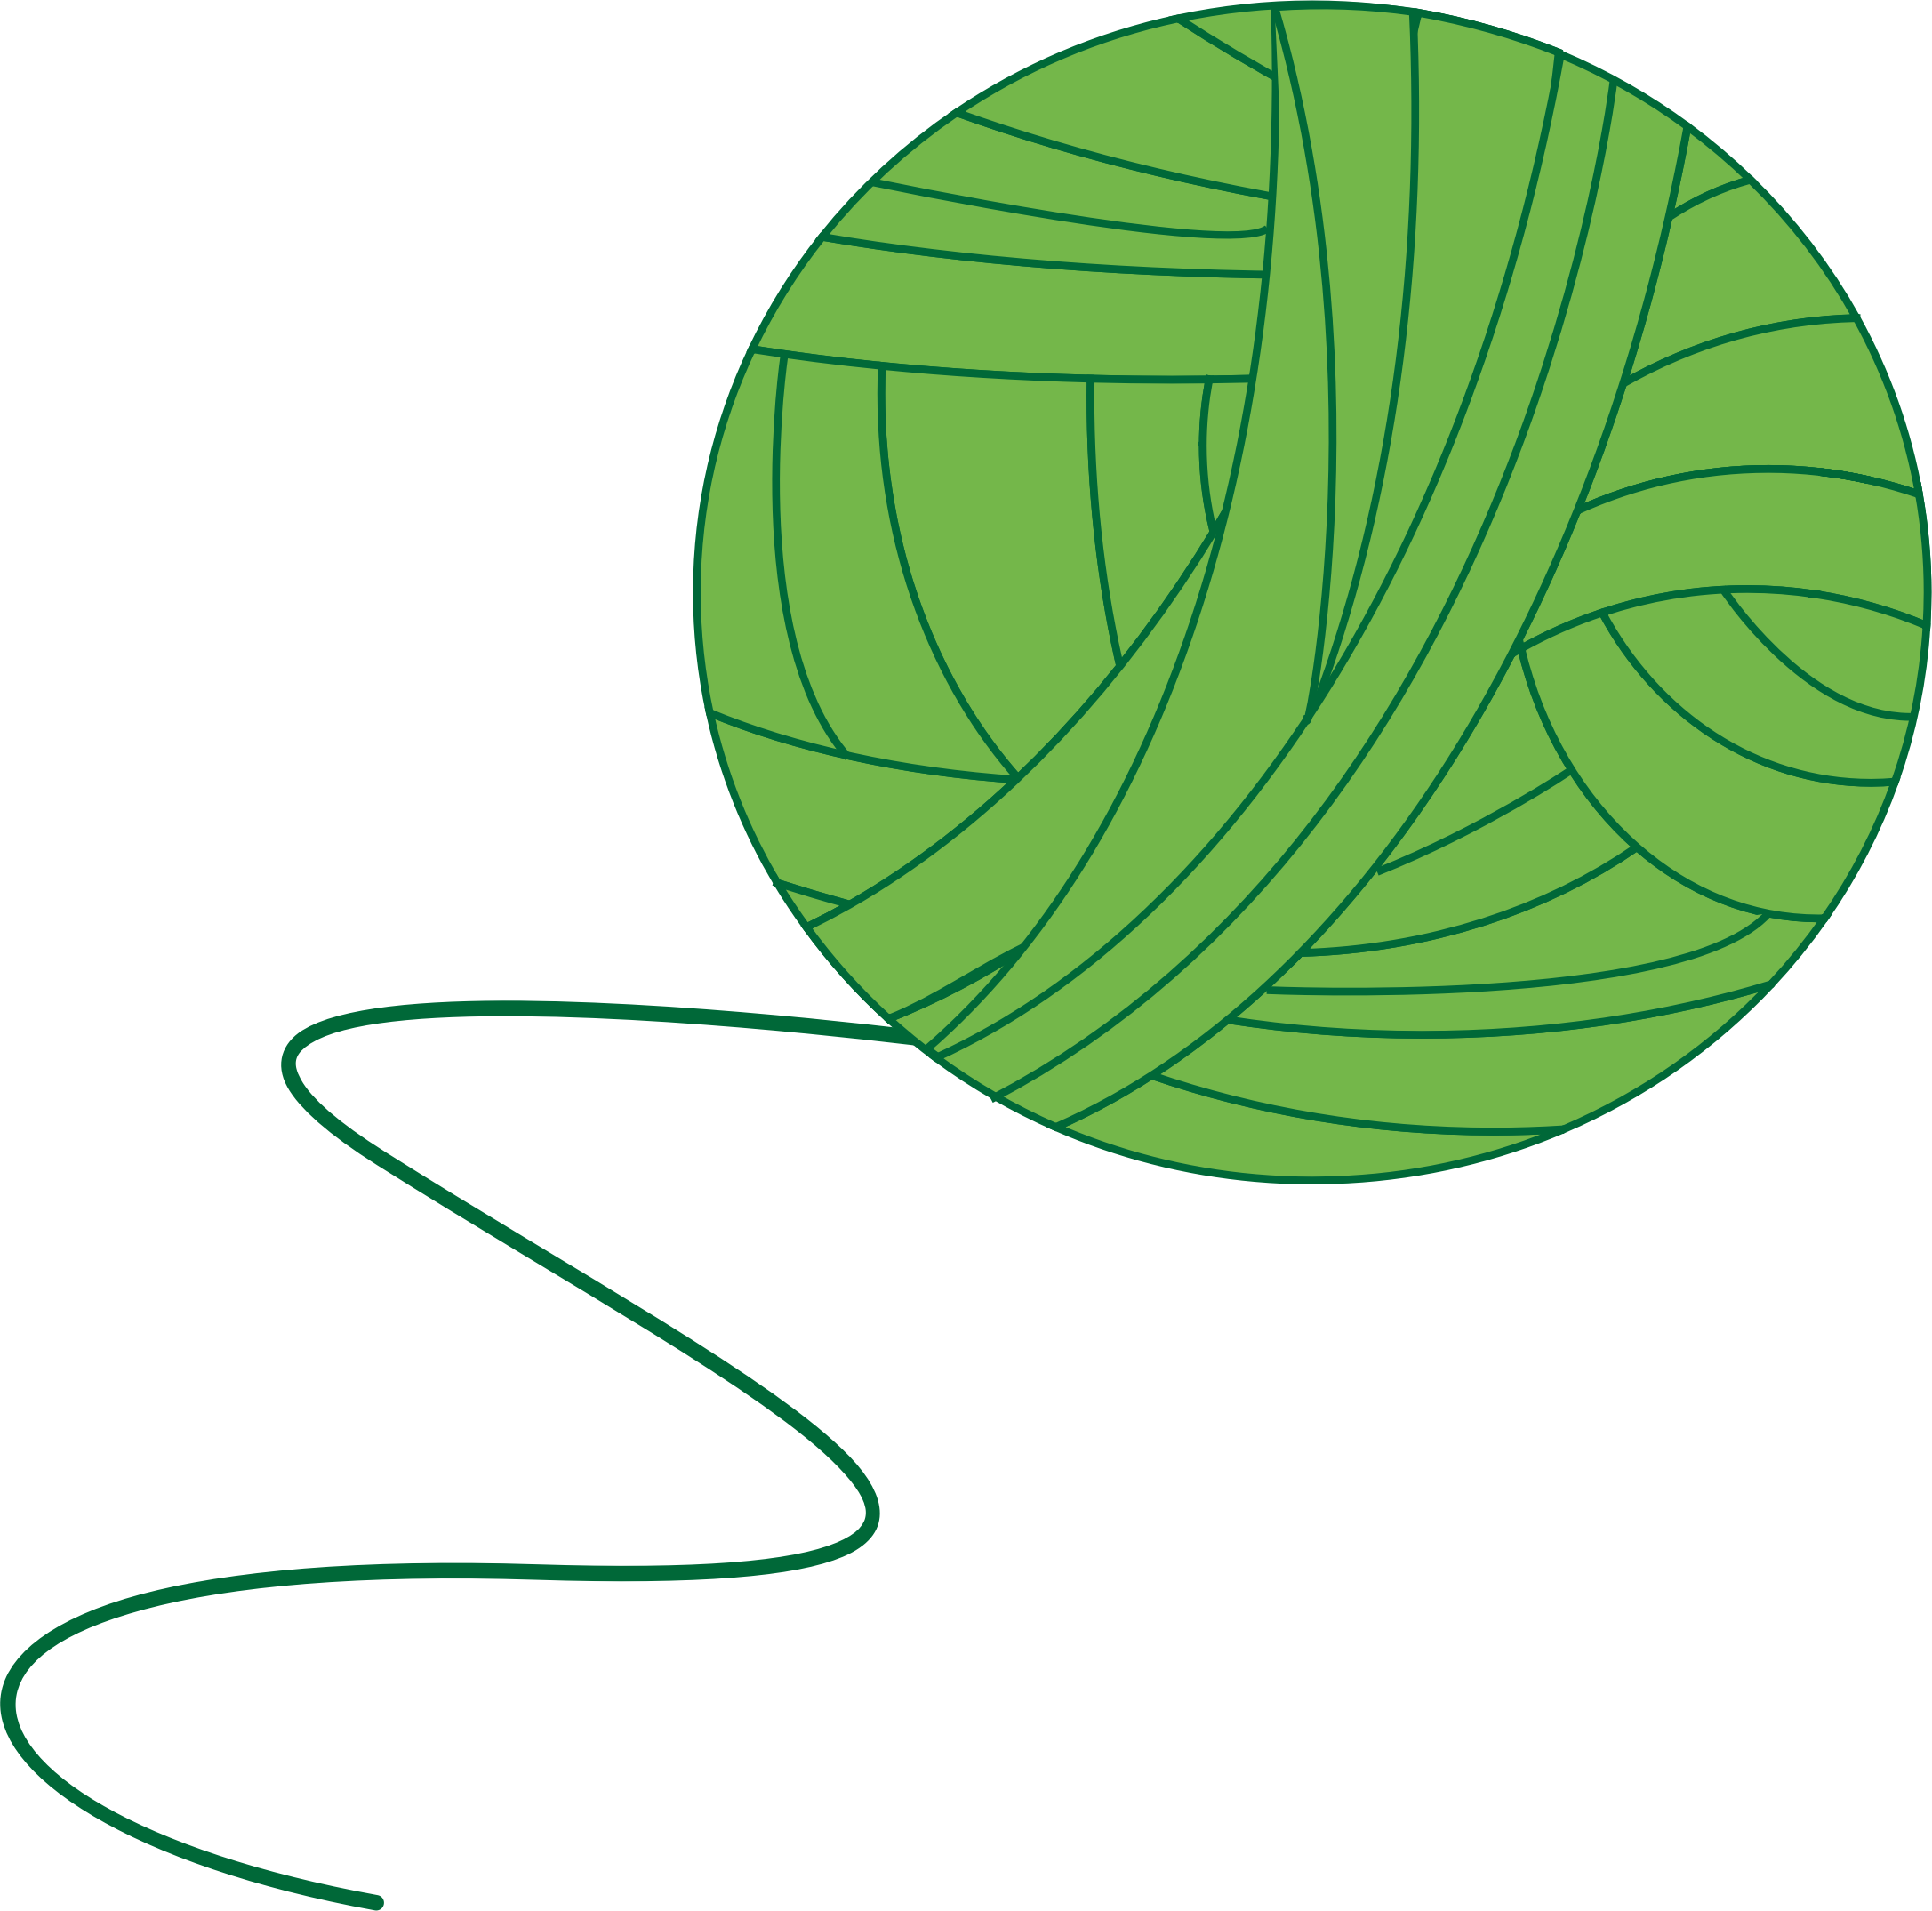 Ball Of String Clipart.